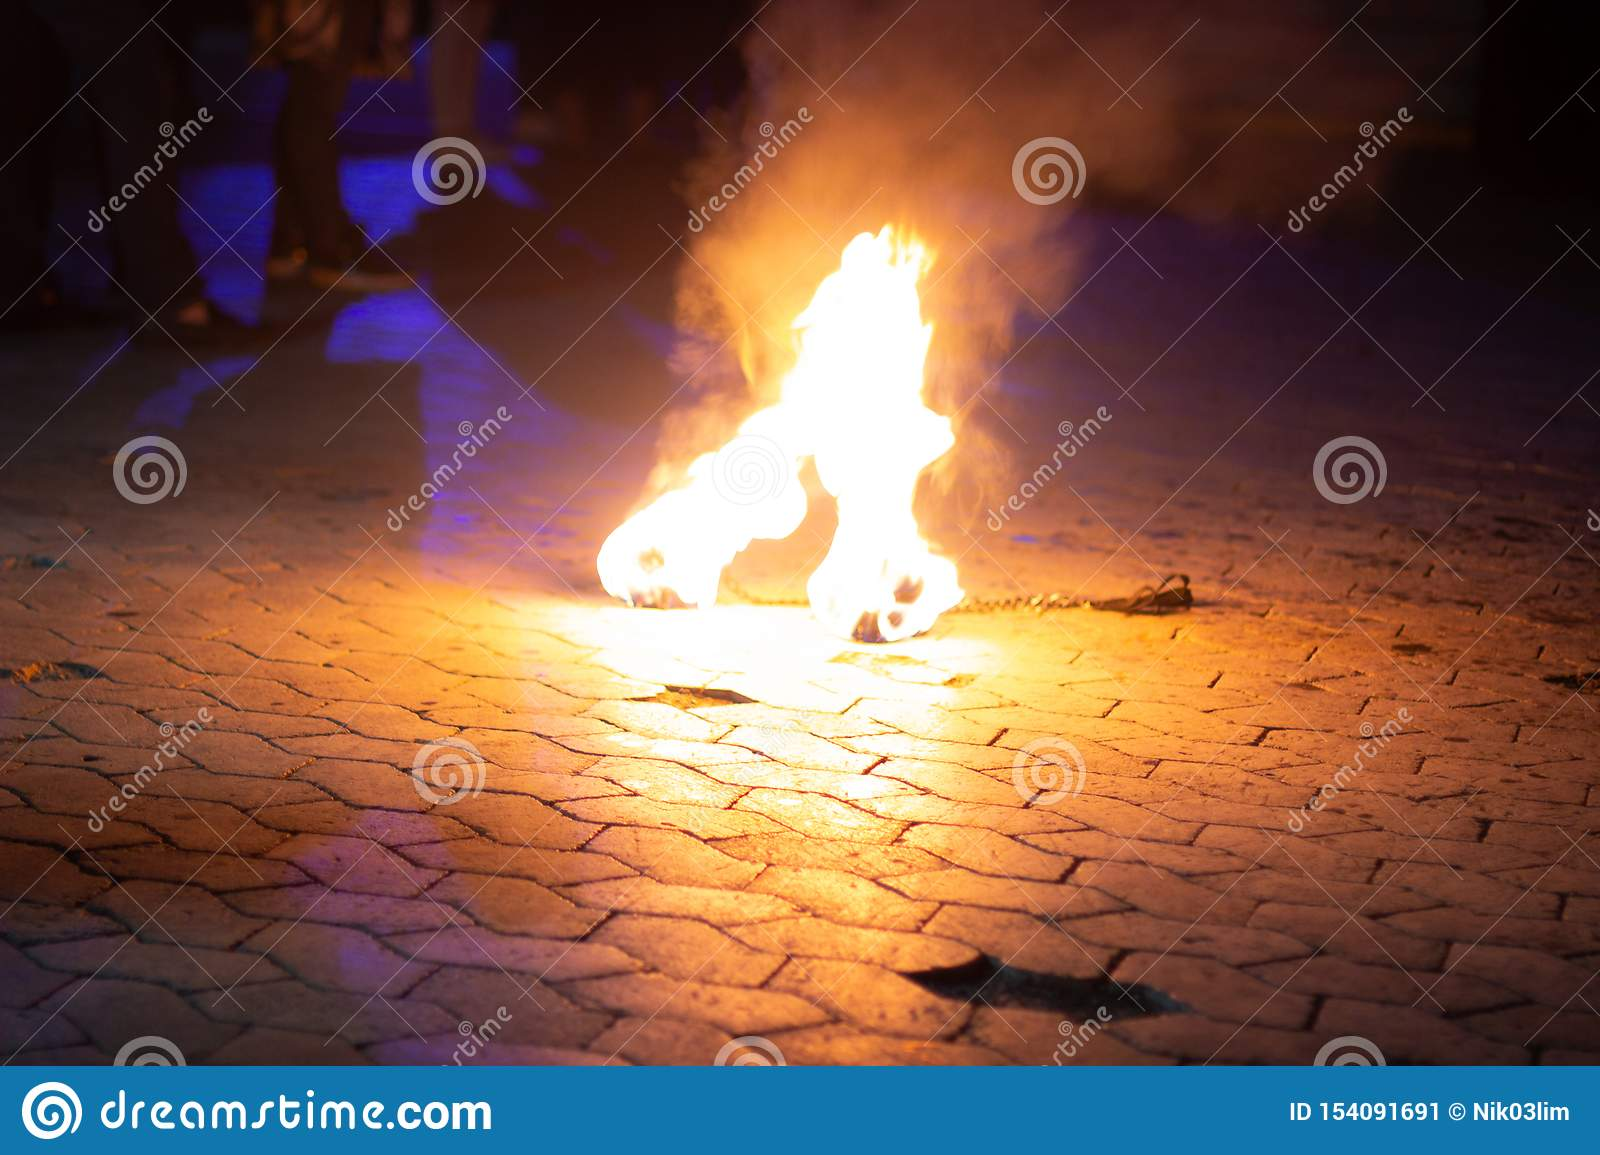 Fire lying on the ground